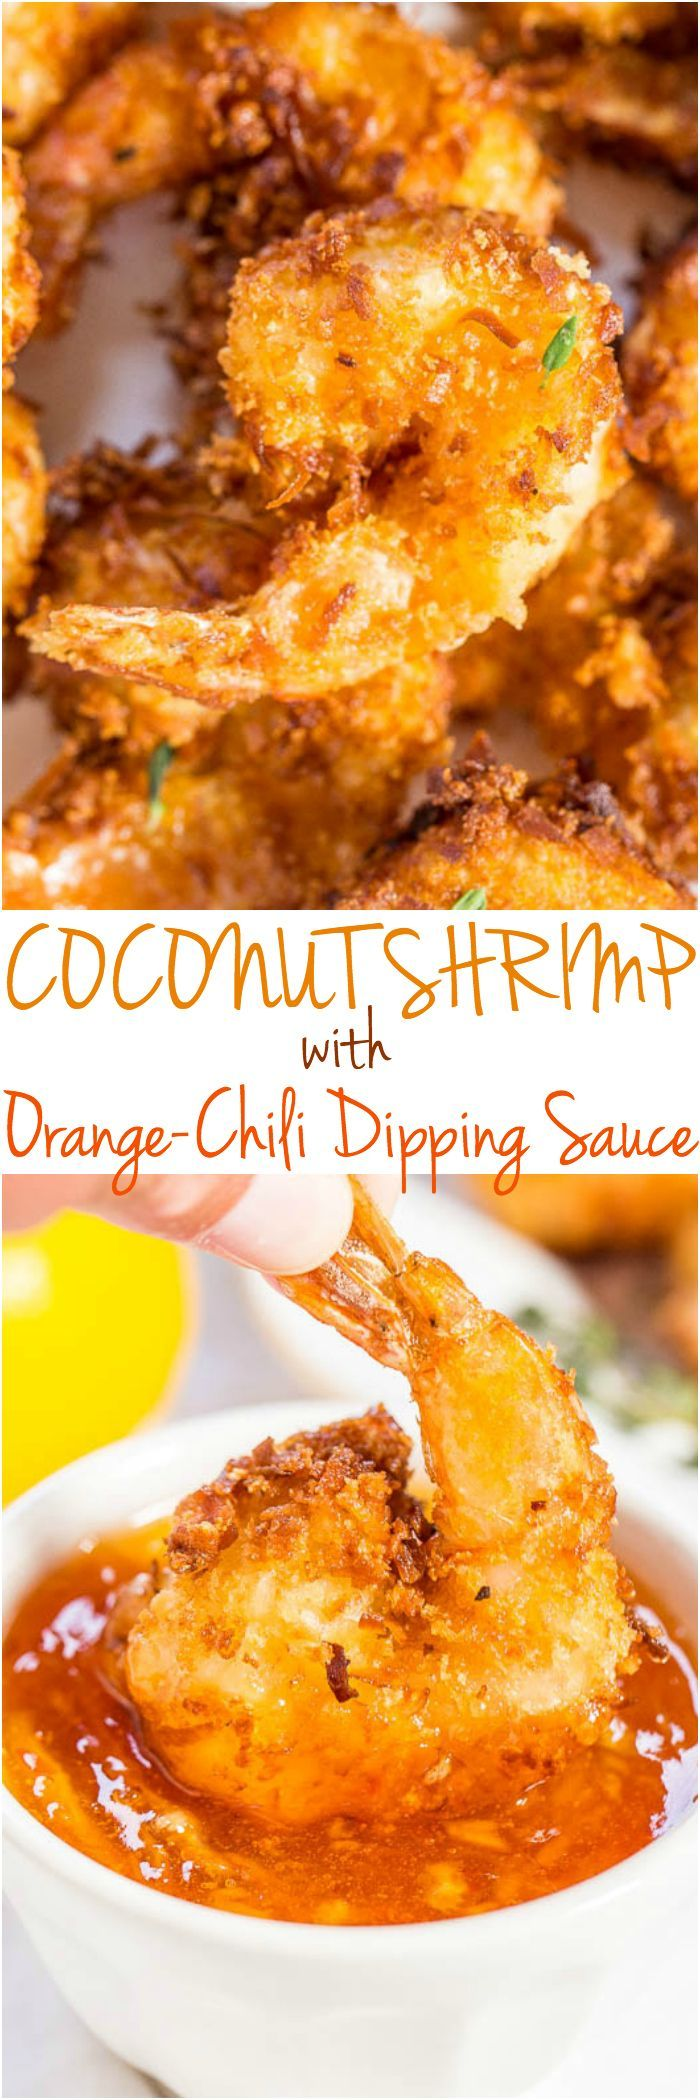 Coconut Shrimp with Orange-Chili Dipping Sauce - Plump, juicy shrimp with a crispy, crunchy coconut coating!! Fast, easy, and better than you get in restaurants! Will be your new favorite shrimp recipe!!